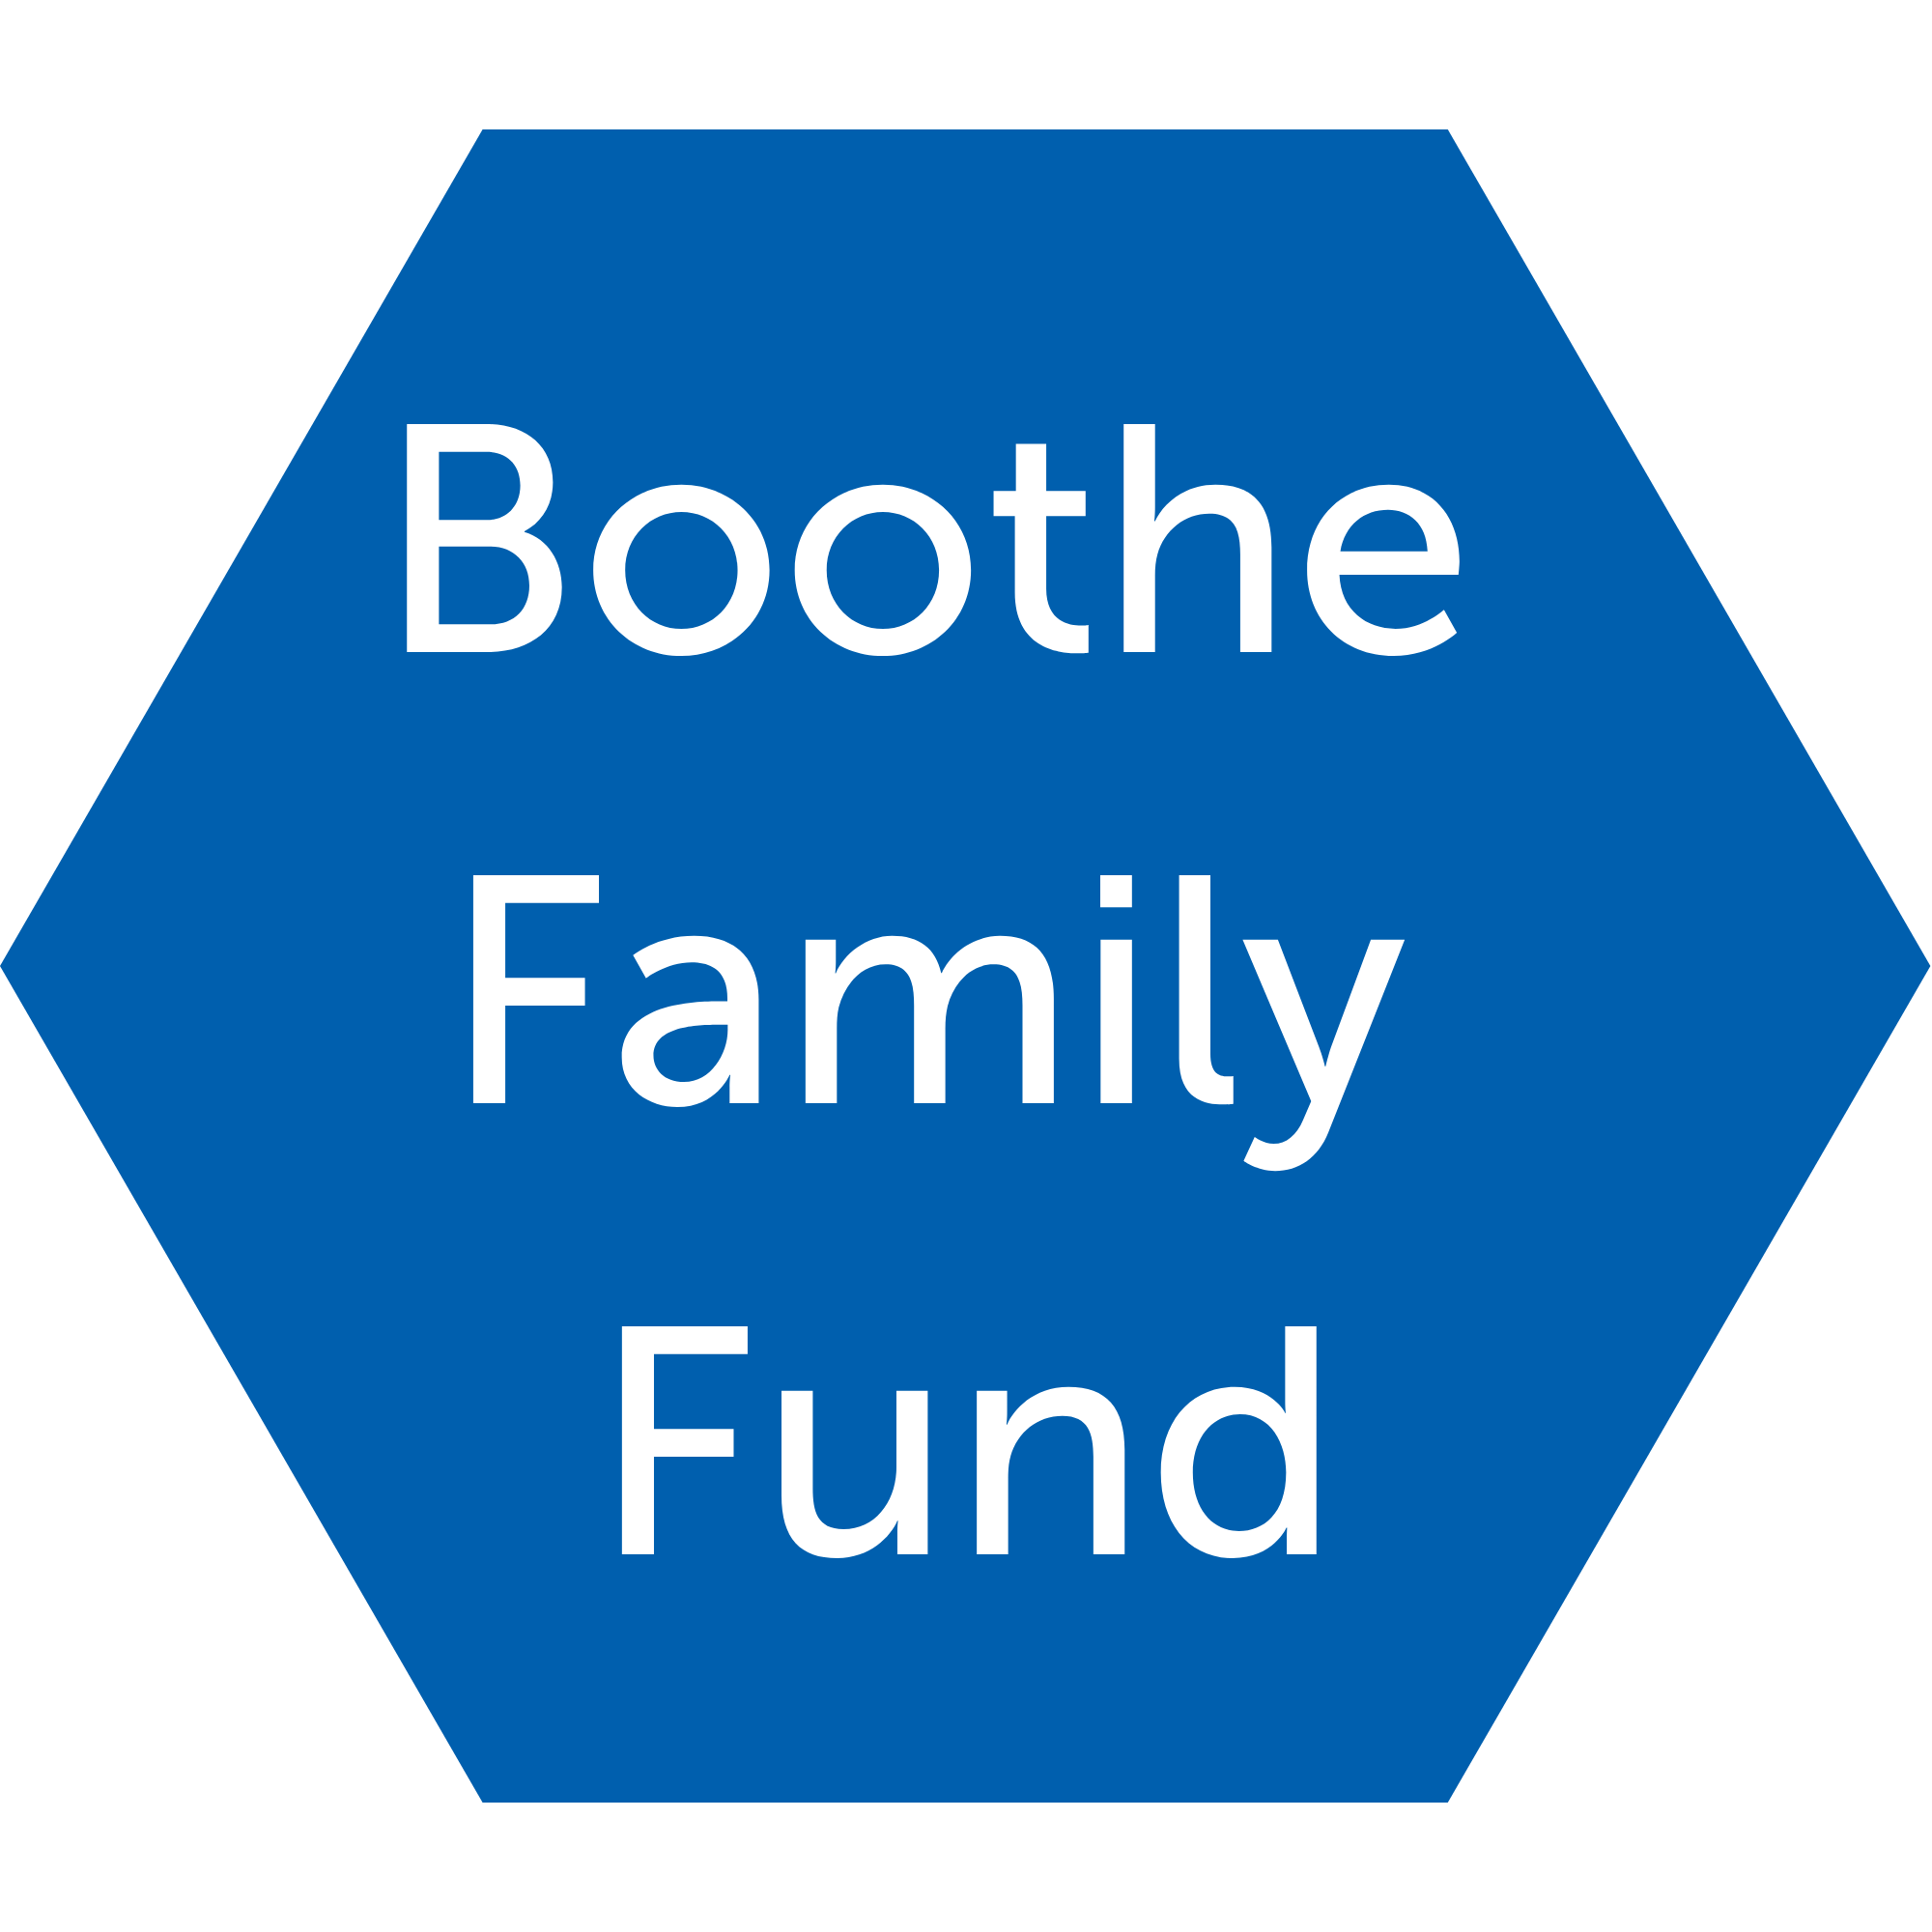 Boothe Family Fund